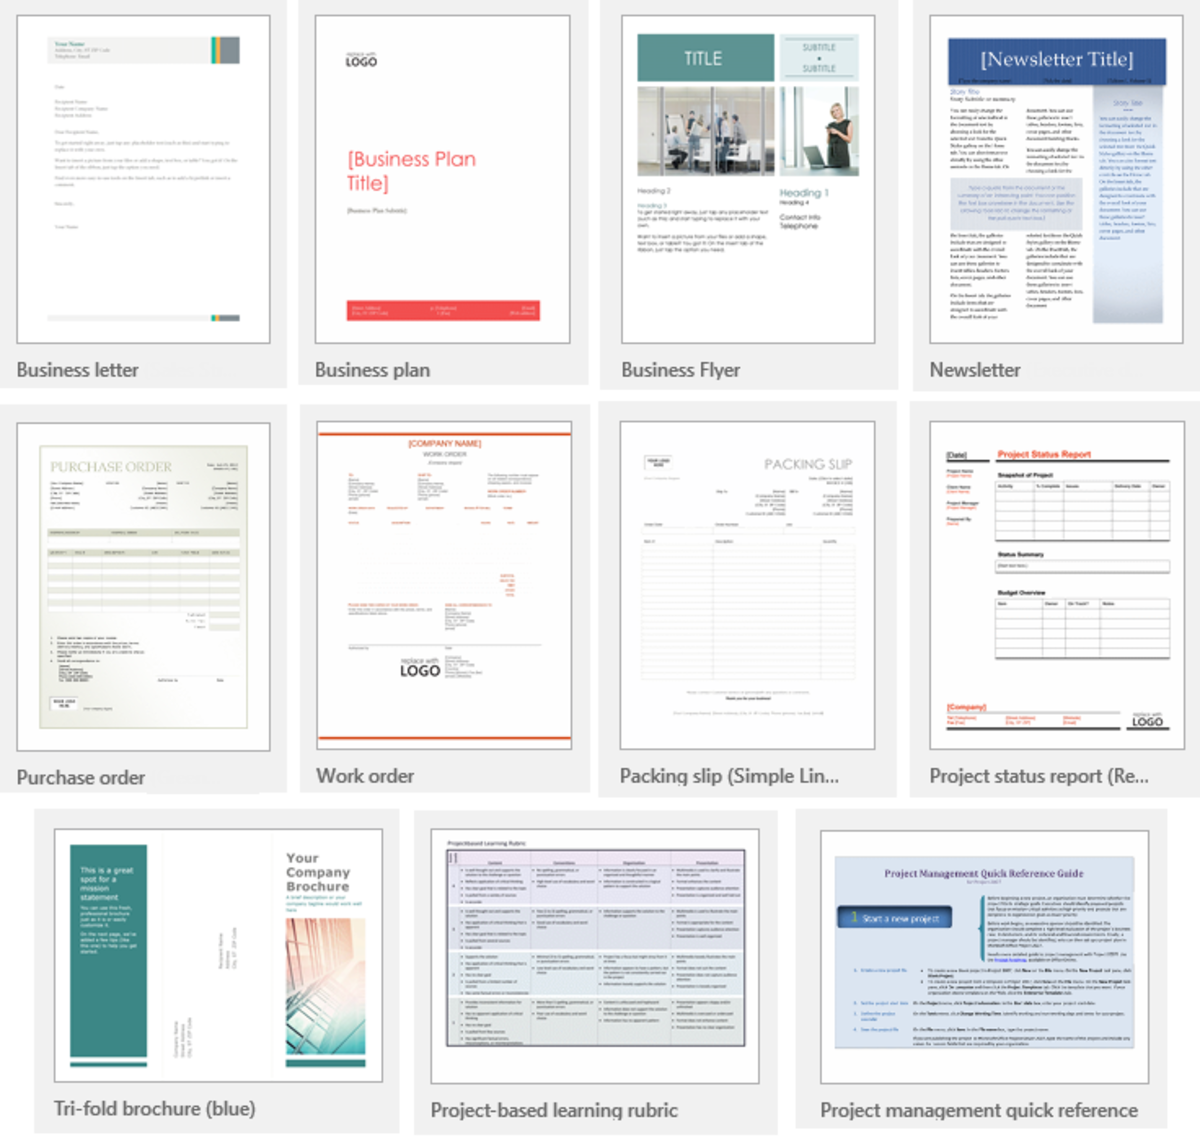 Microsoft Word 2016 Templates Showcase